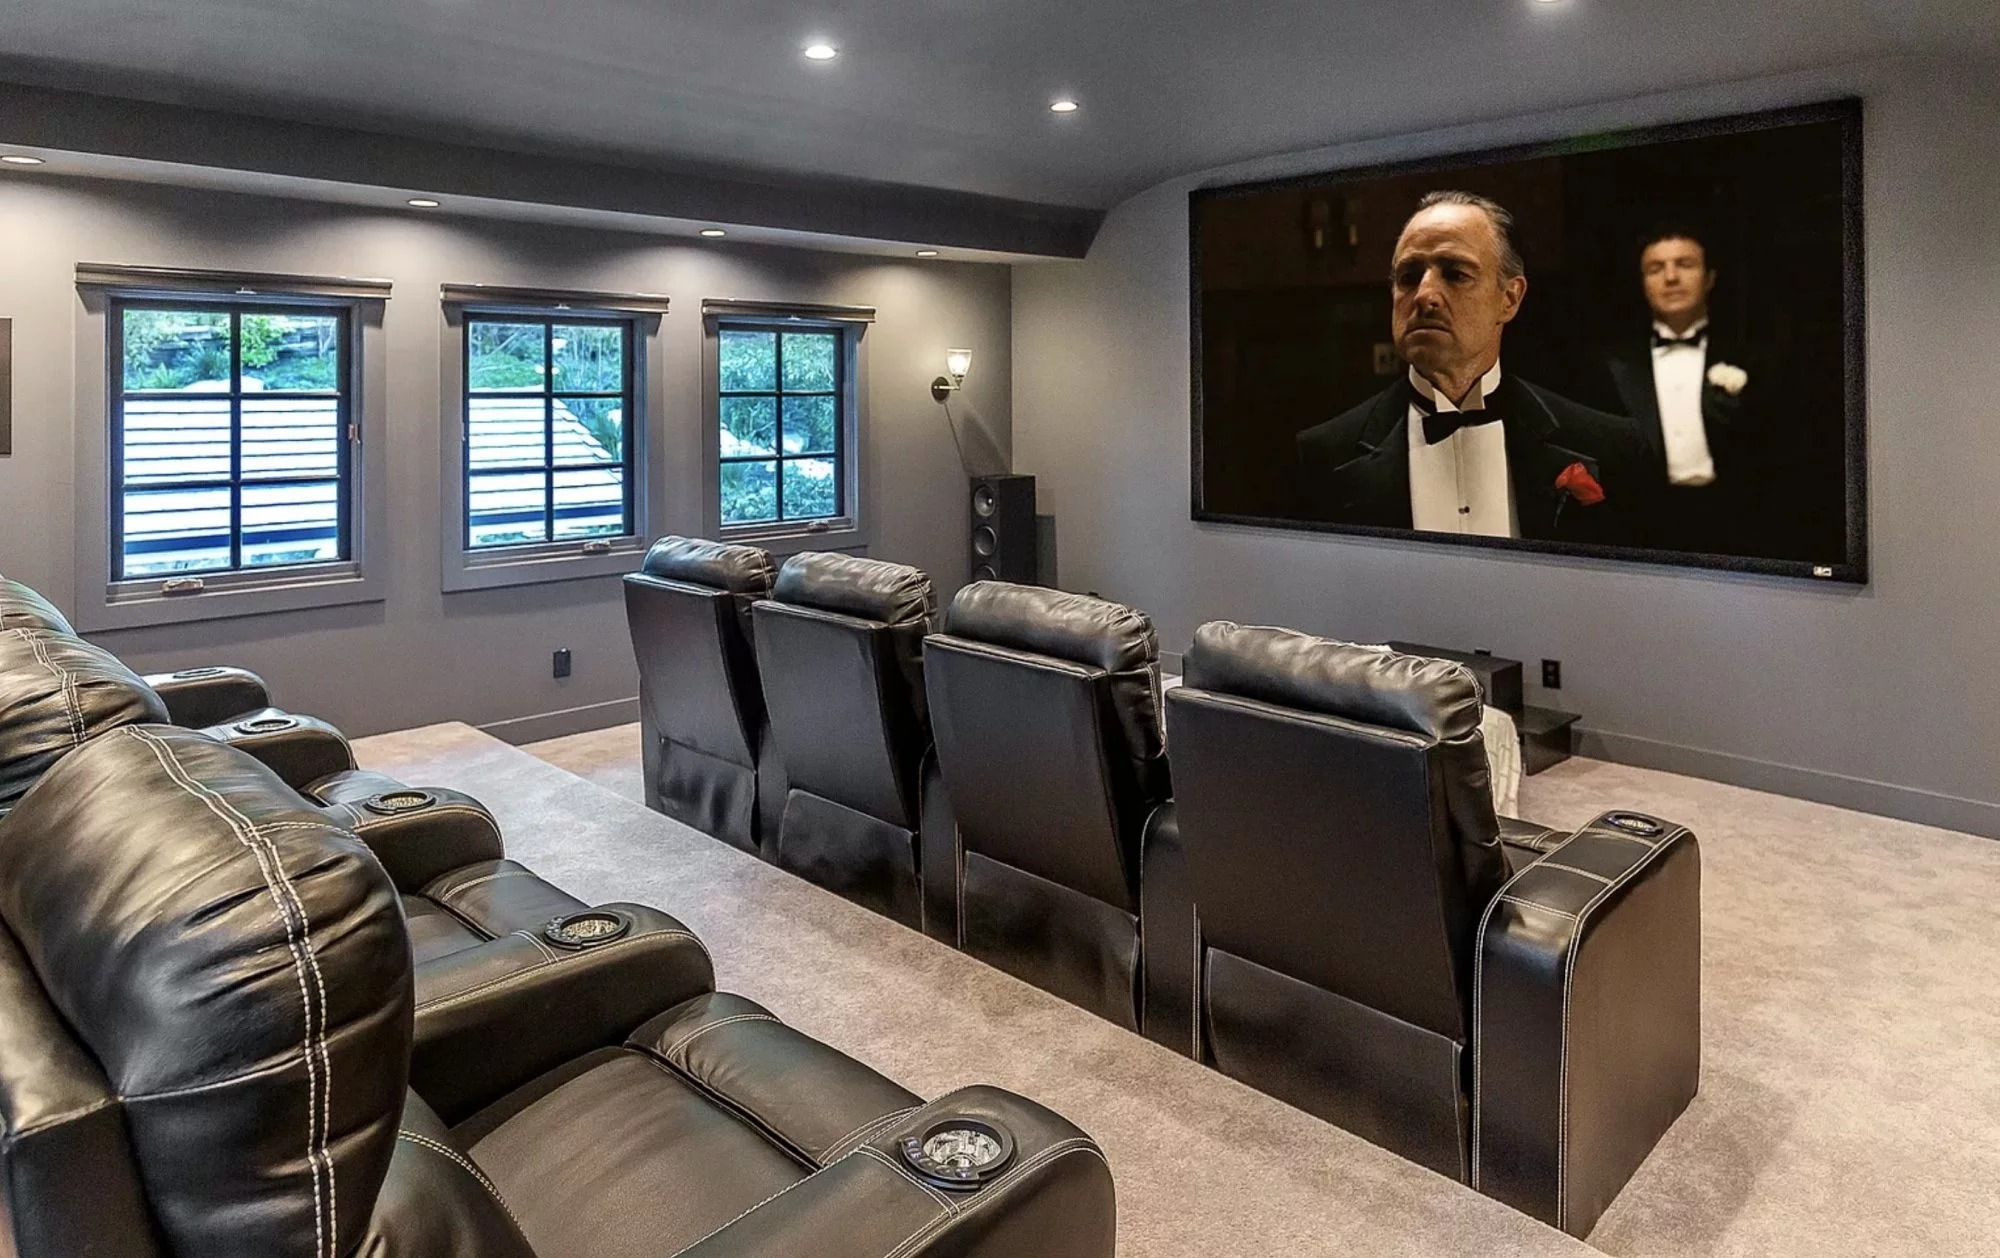 Cine en casa / The Grosby Group